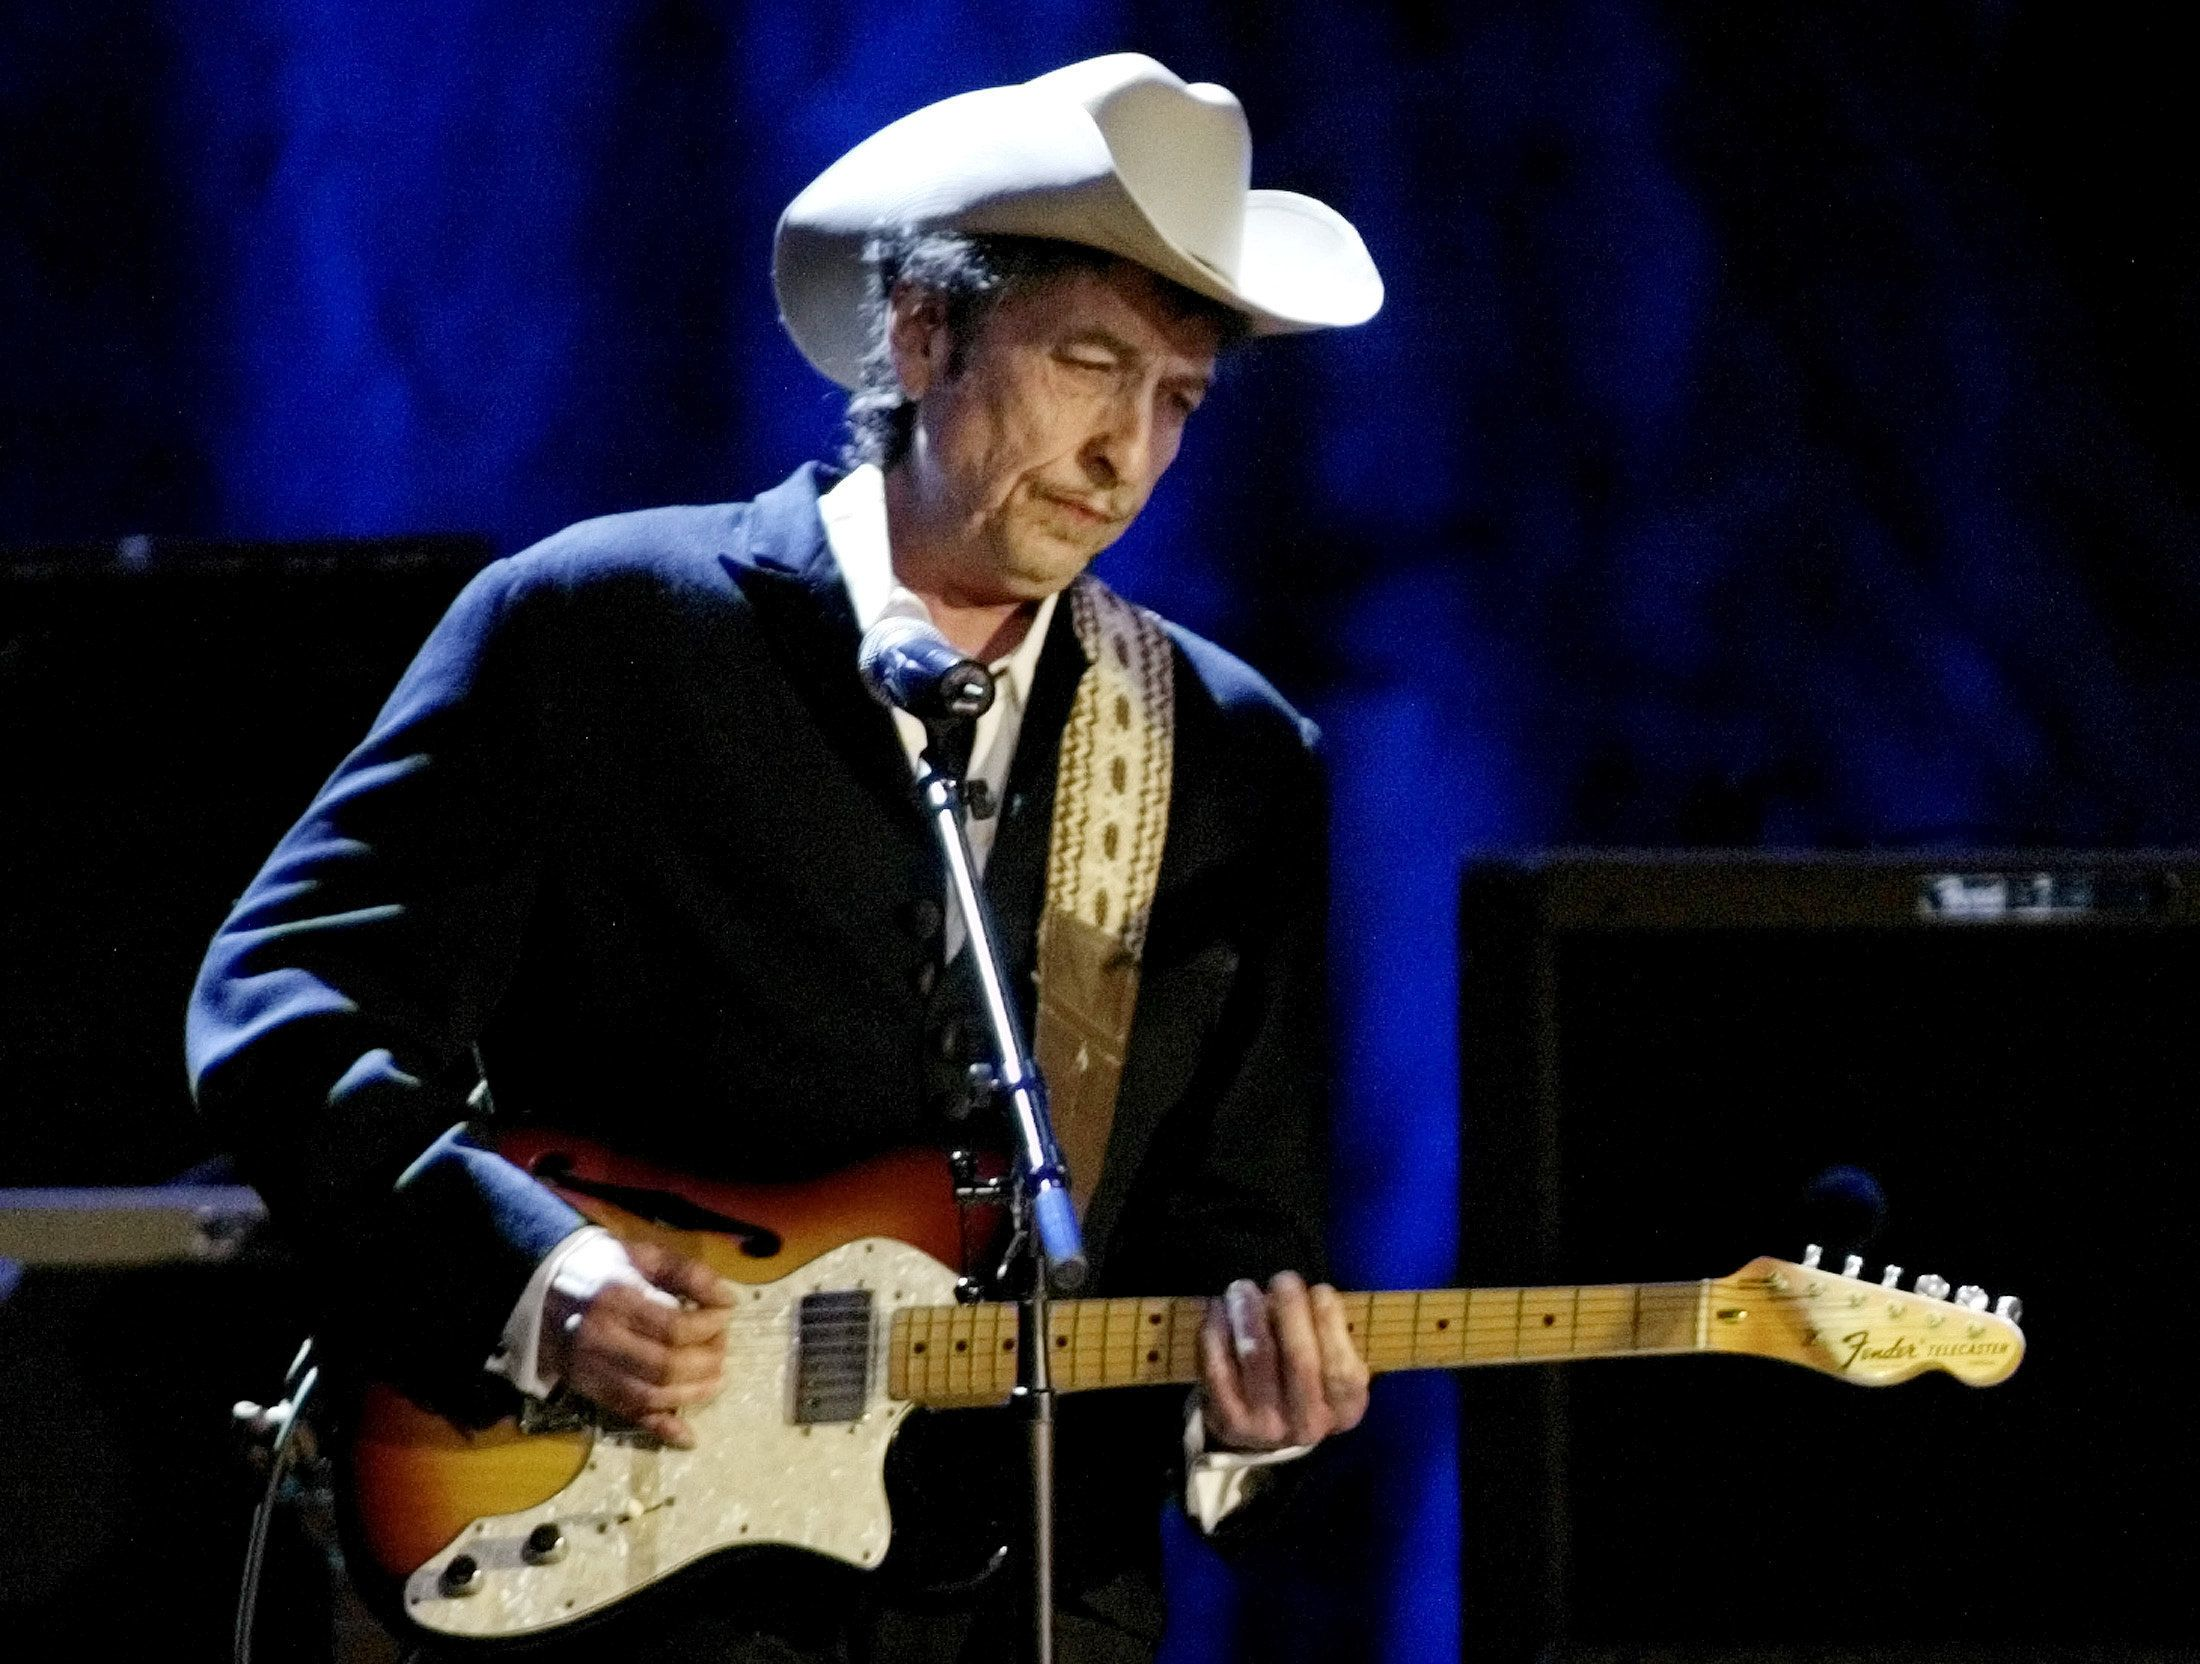 Bob Dylan, winner of the Nobel Prize this year, will not attend the Nobel Prize ceremony in December.